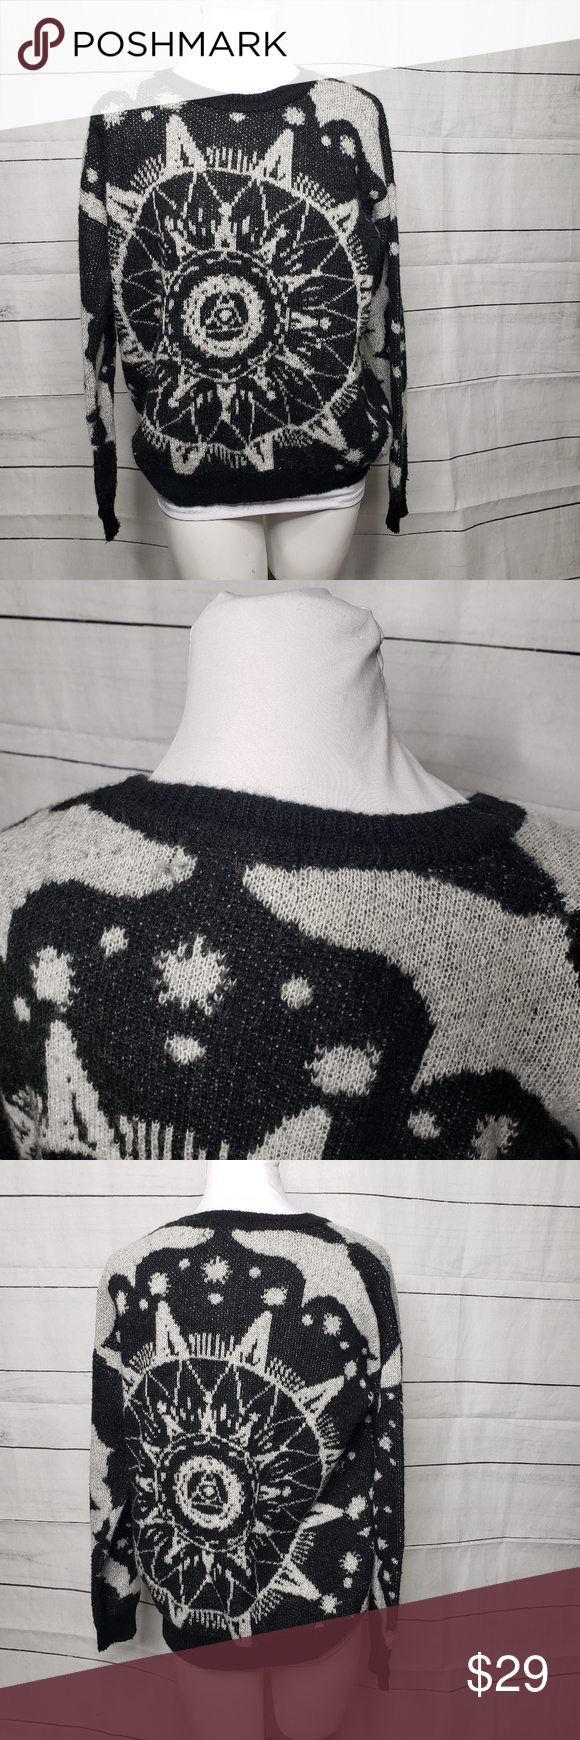 Staring at Stars UO celestial sweater small Staring at Stars from Urban Outfitters celestial design sweater. Black and white. Main image is a compass sun Illuminati looking thing.  66% acrylic 29% nylon 3% wool Overall fuzzy look and cozy feel.  Measurements are taken with a fabric tape measure and are approximate.   Armpit to armpit: 22 armpit to bottom hem: 16.6 shoulder to bottom hem: 24 Staring at Stars Sweaters #fabrictape